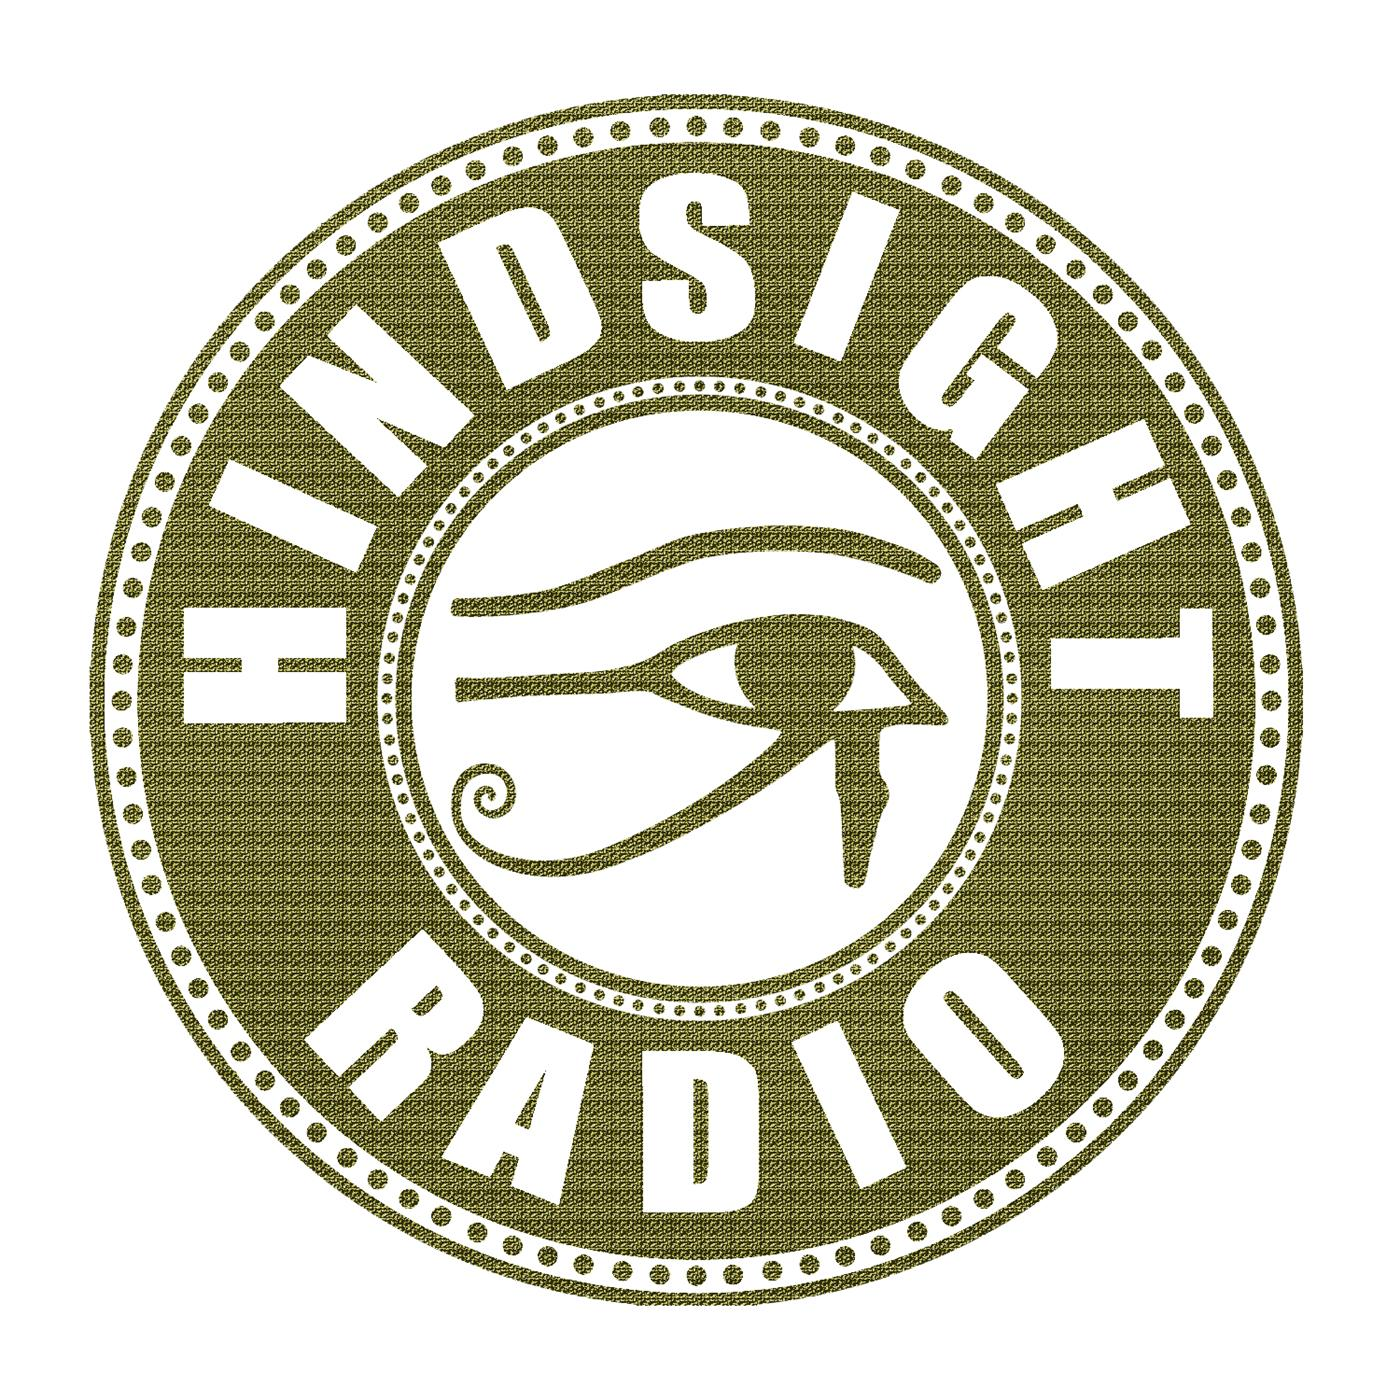 HINDSIGHT RADIO